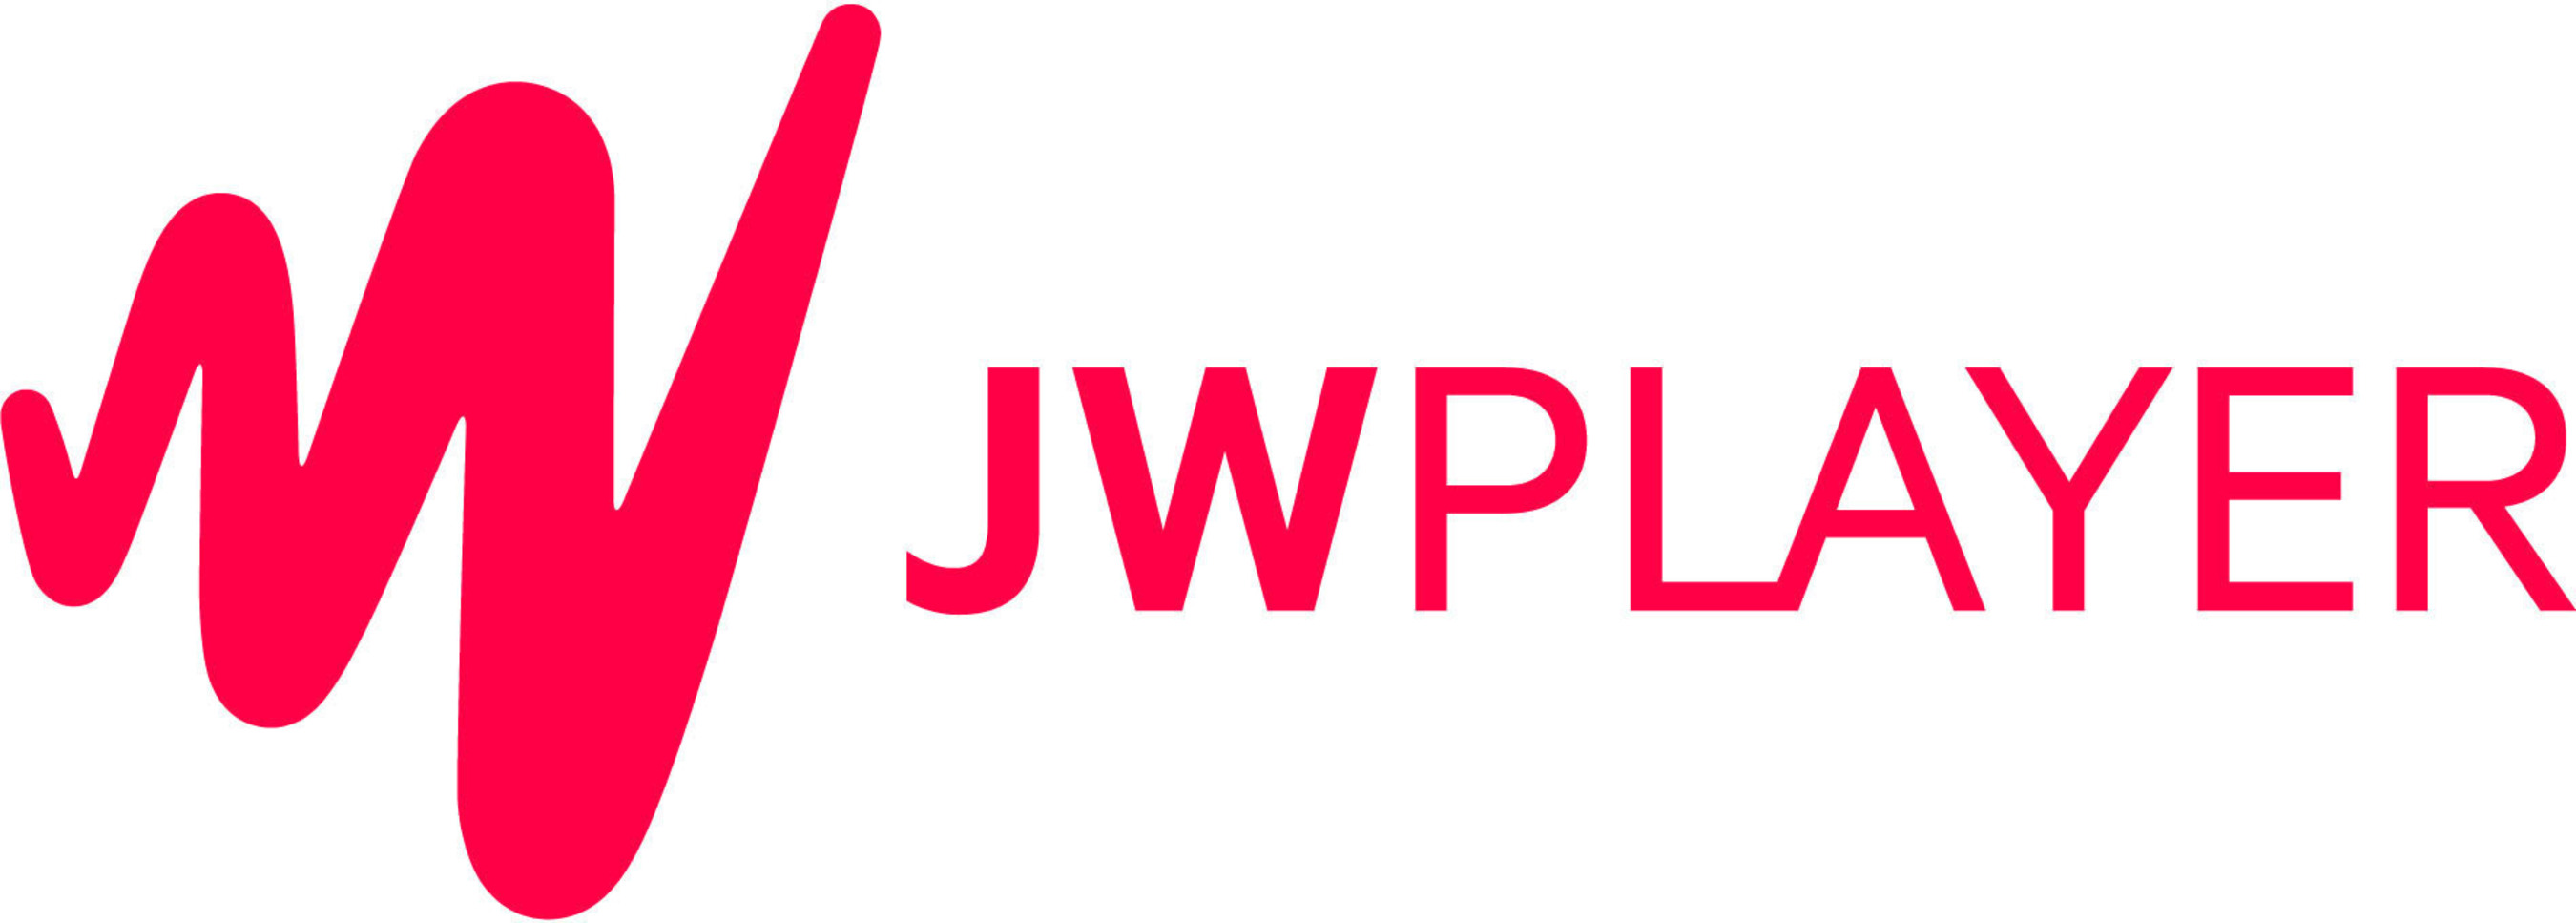 JW Player Adds Top Global Media Companies to Its Expanding Customer Roster, Nearly 600 New Enterprise Customers in Q1 2016